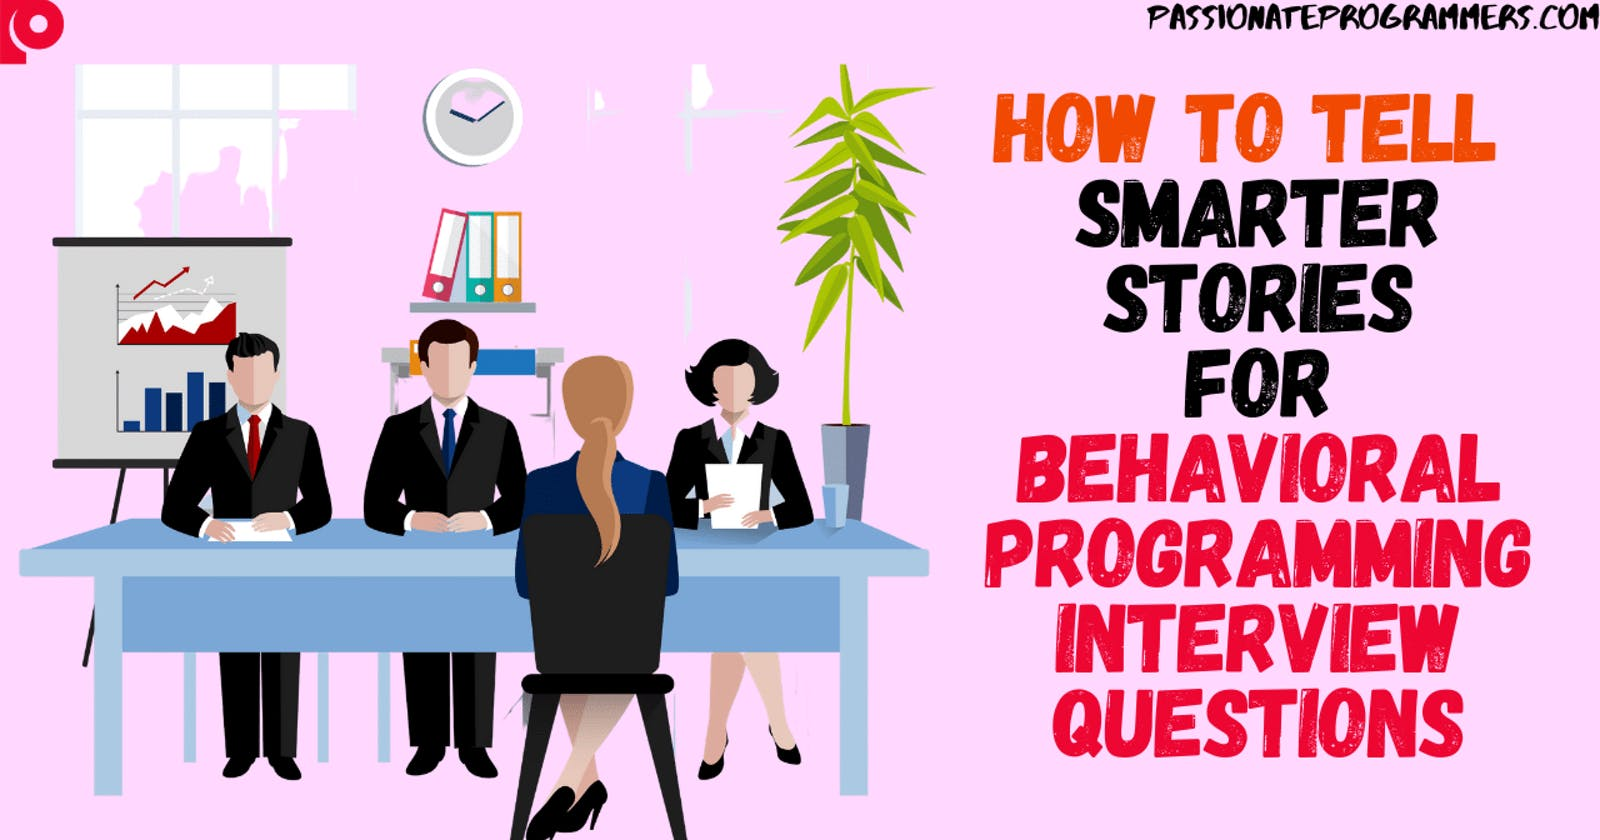 Saying Smarter Stories For Behavioral Programming  Interview Questions